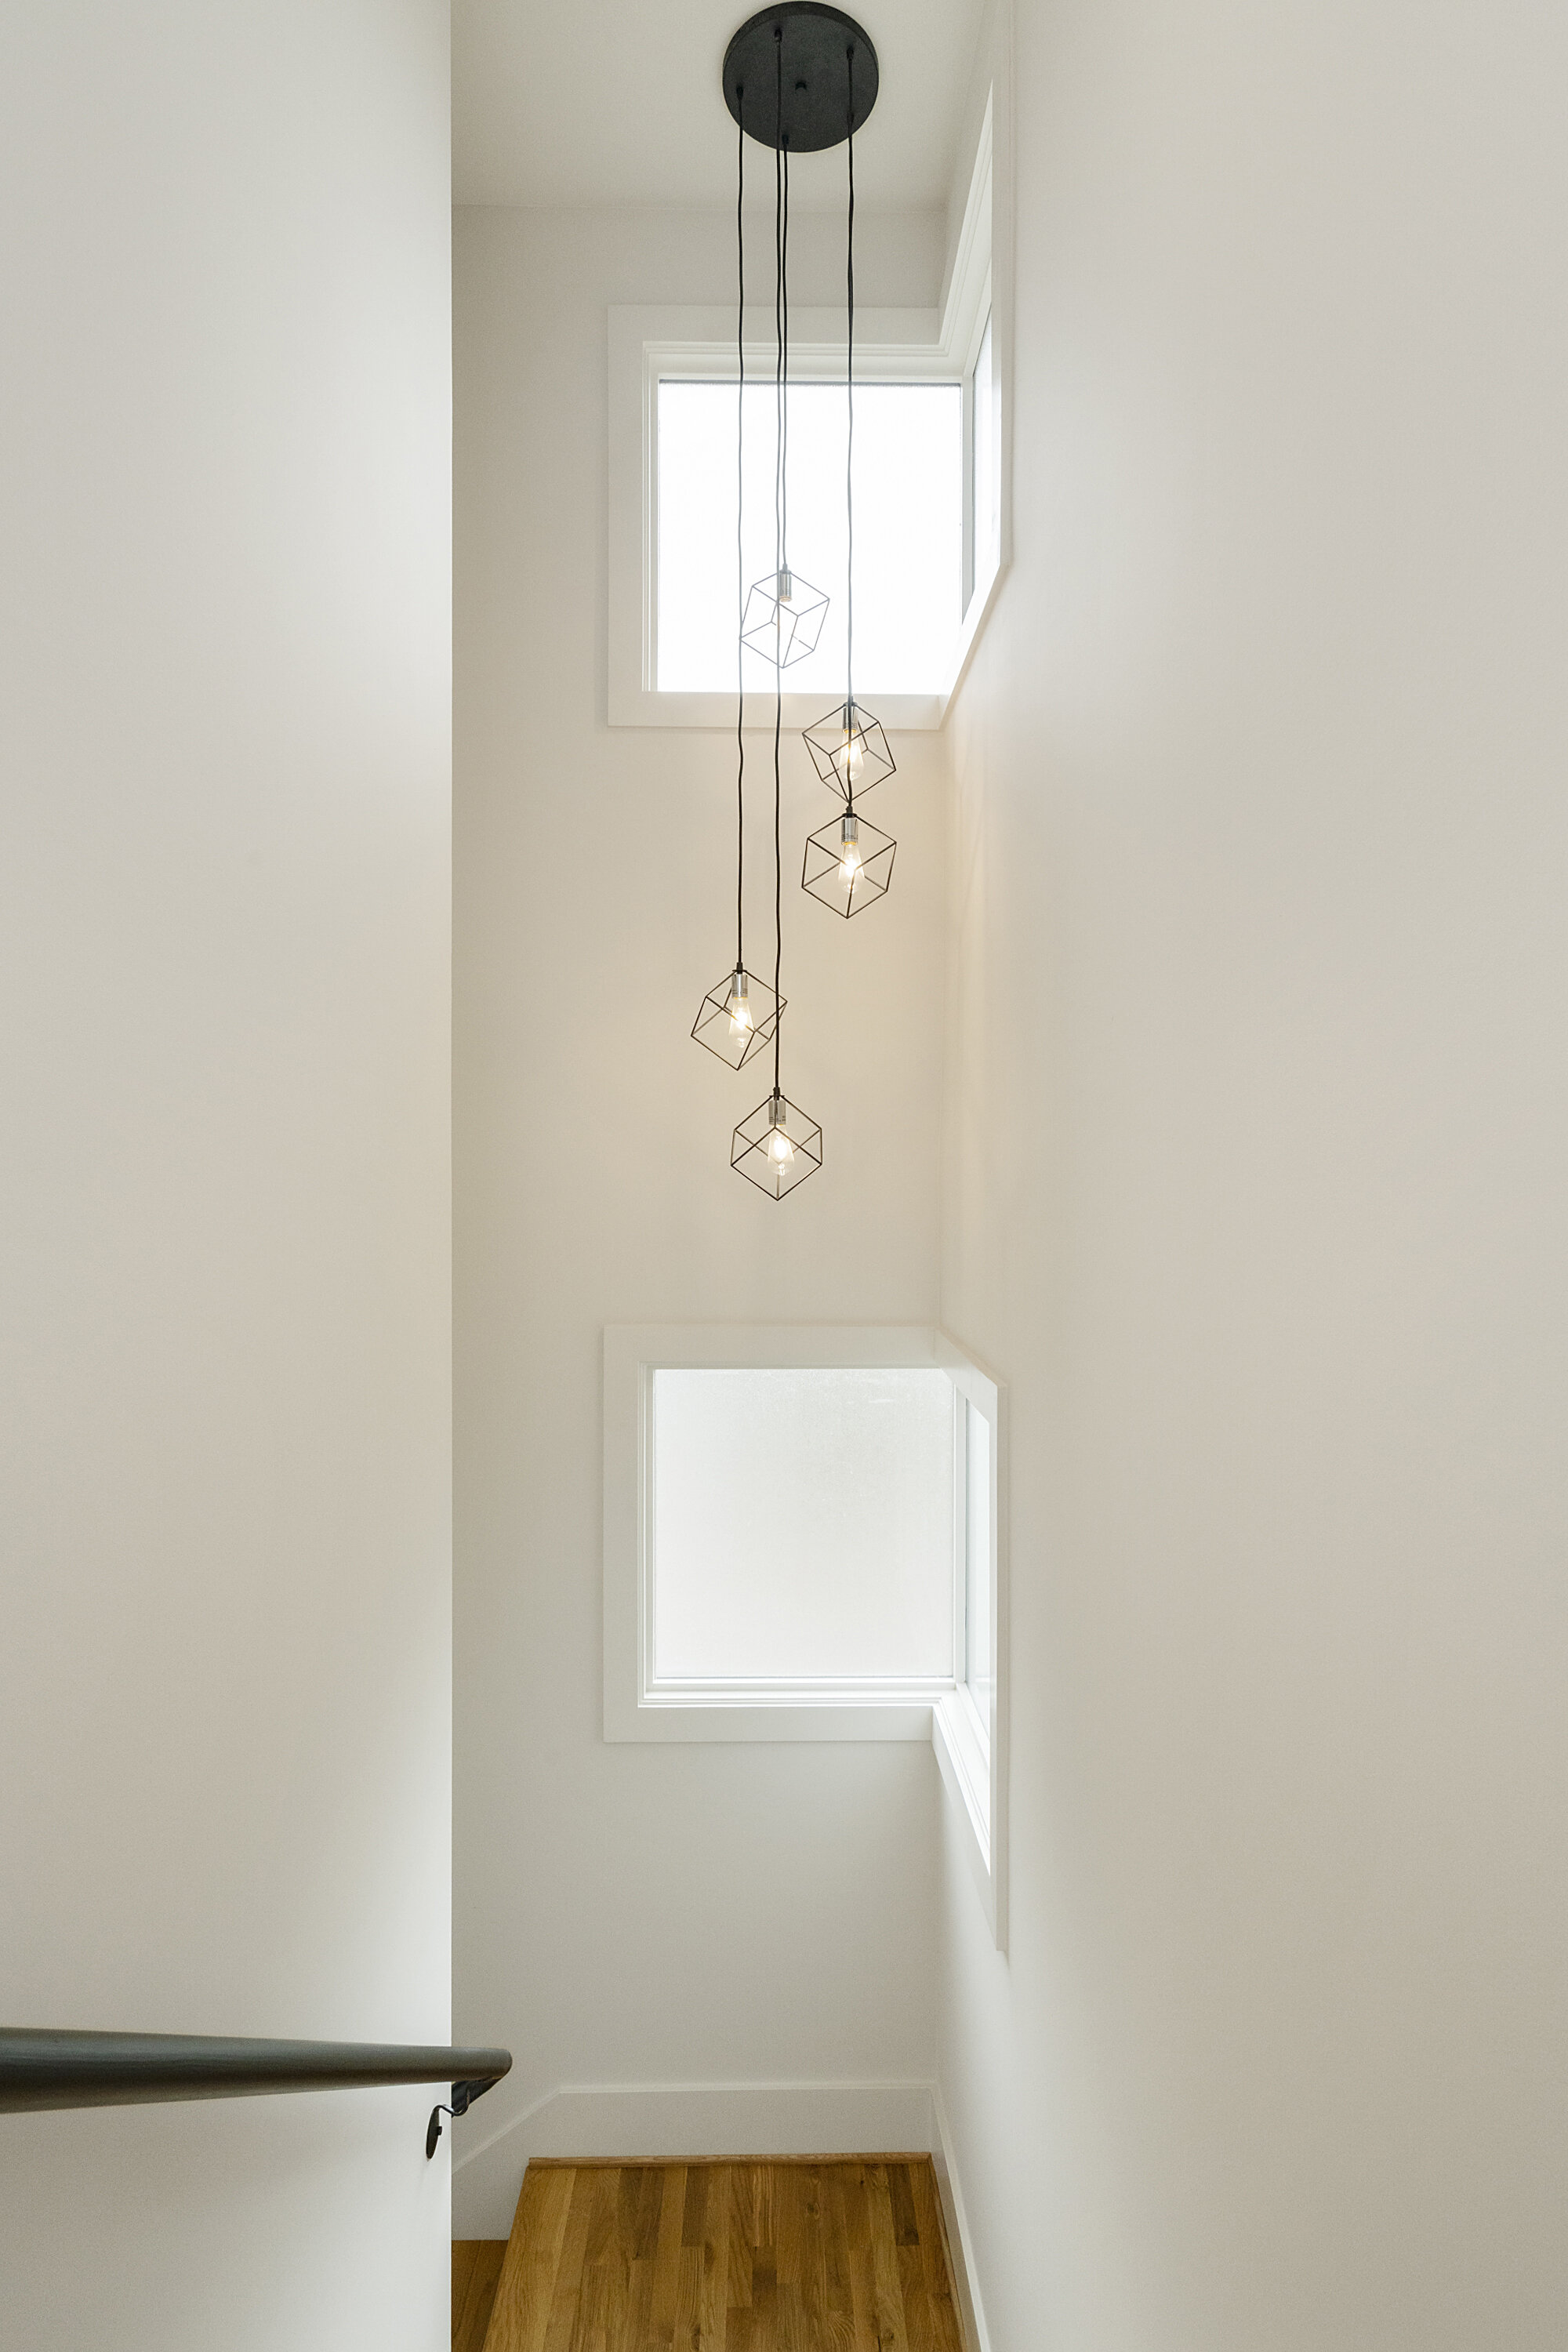 Light fixture in stairwell